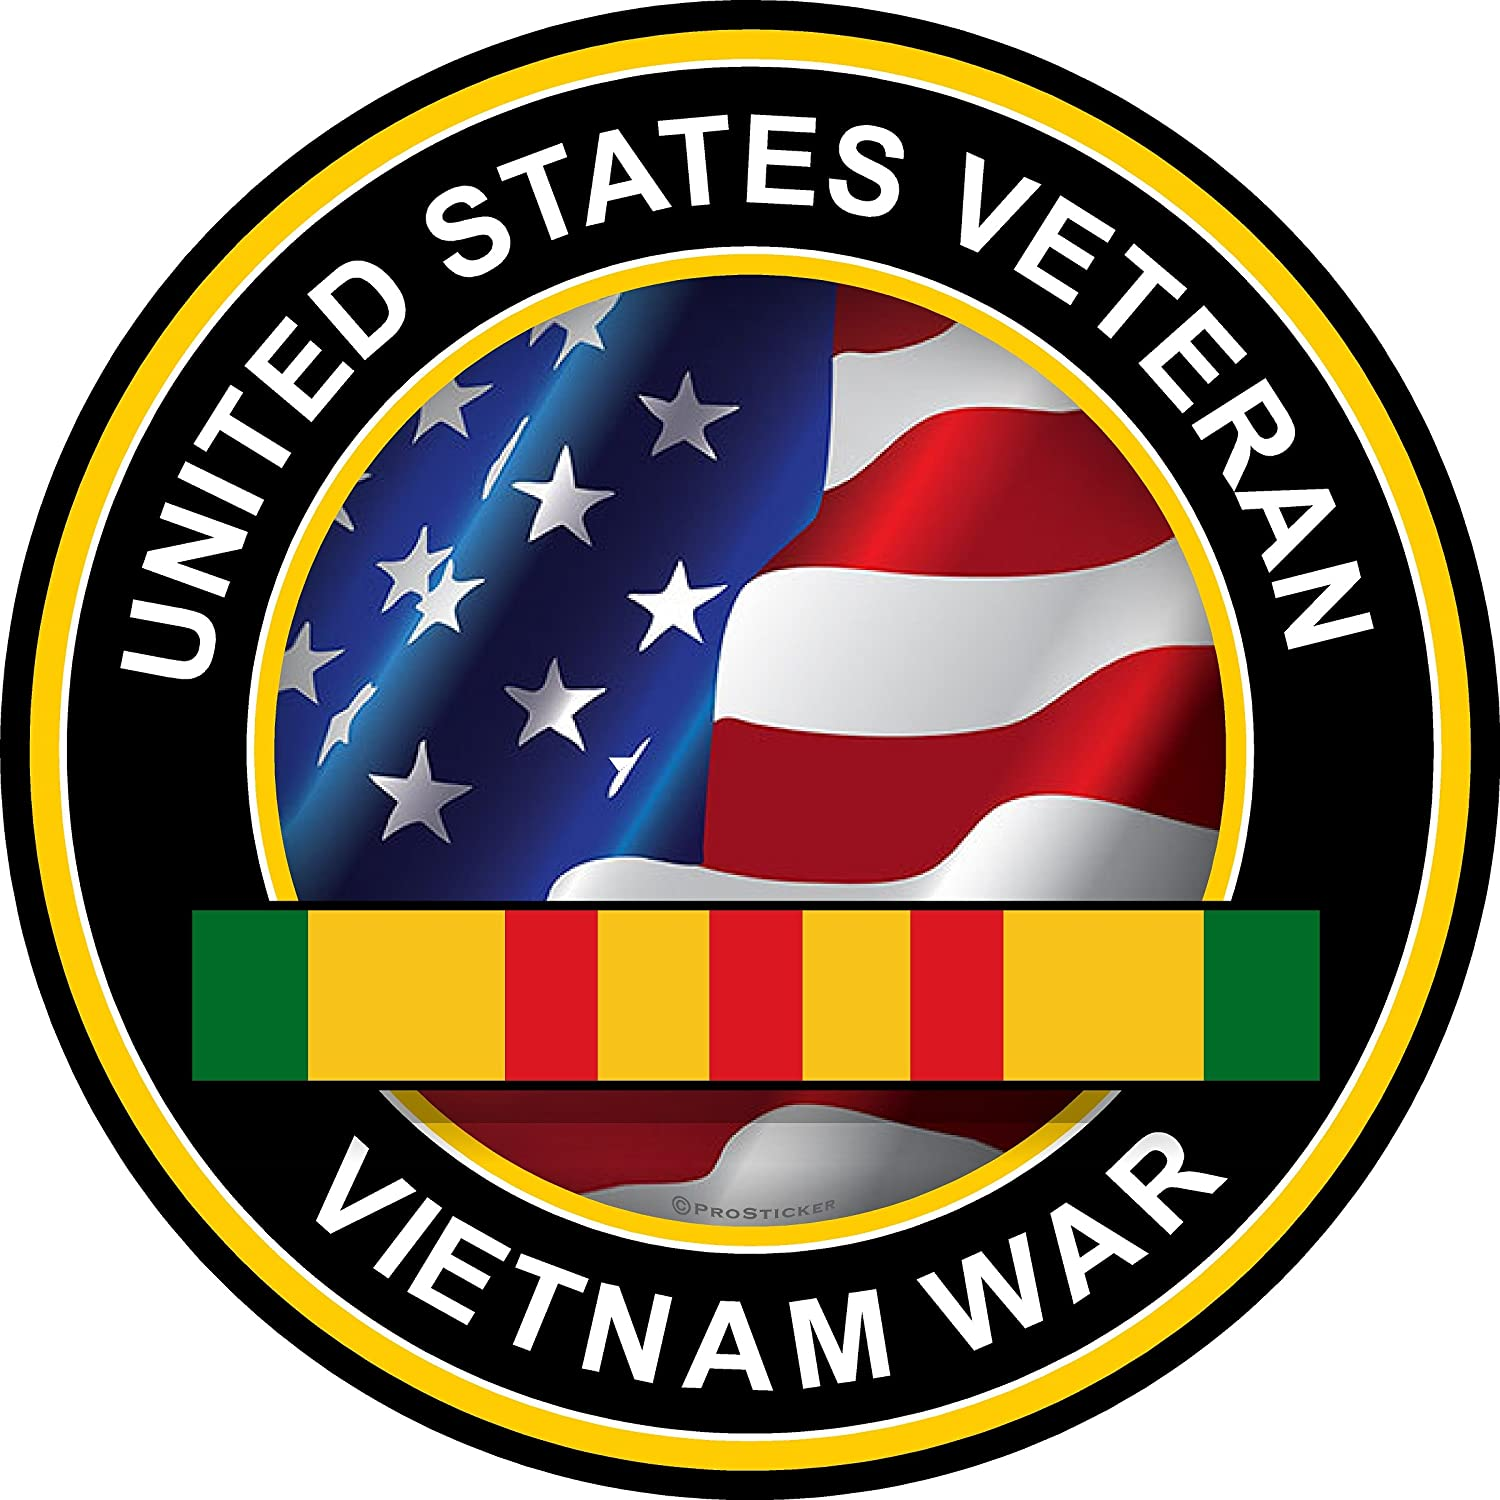 ProSticker 1070V (One) Patriot Series United States Veteran, Vietnam War Military Anchor Decal Sticker (4